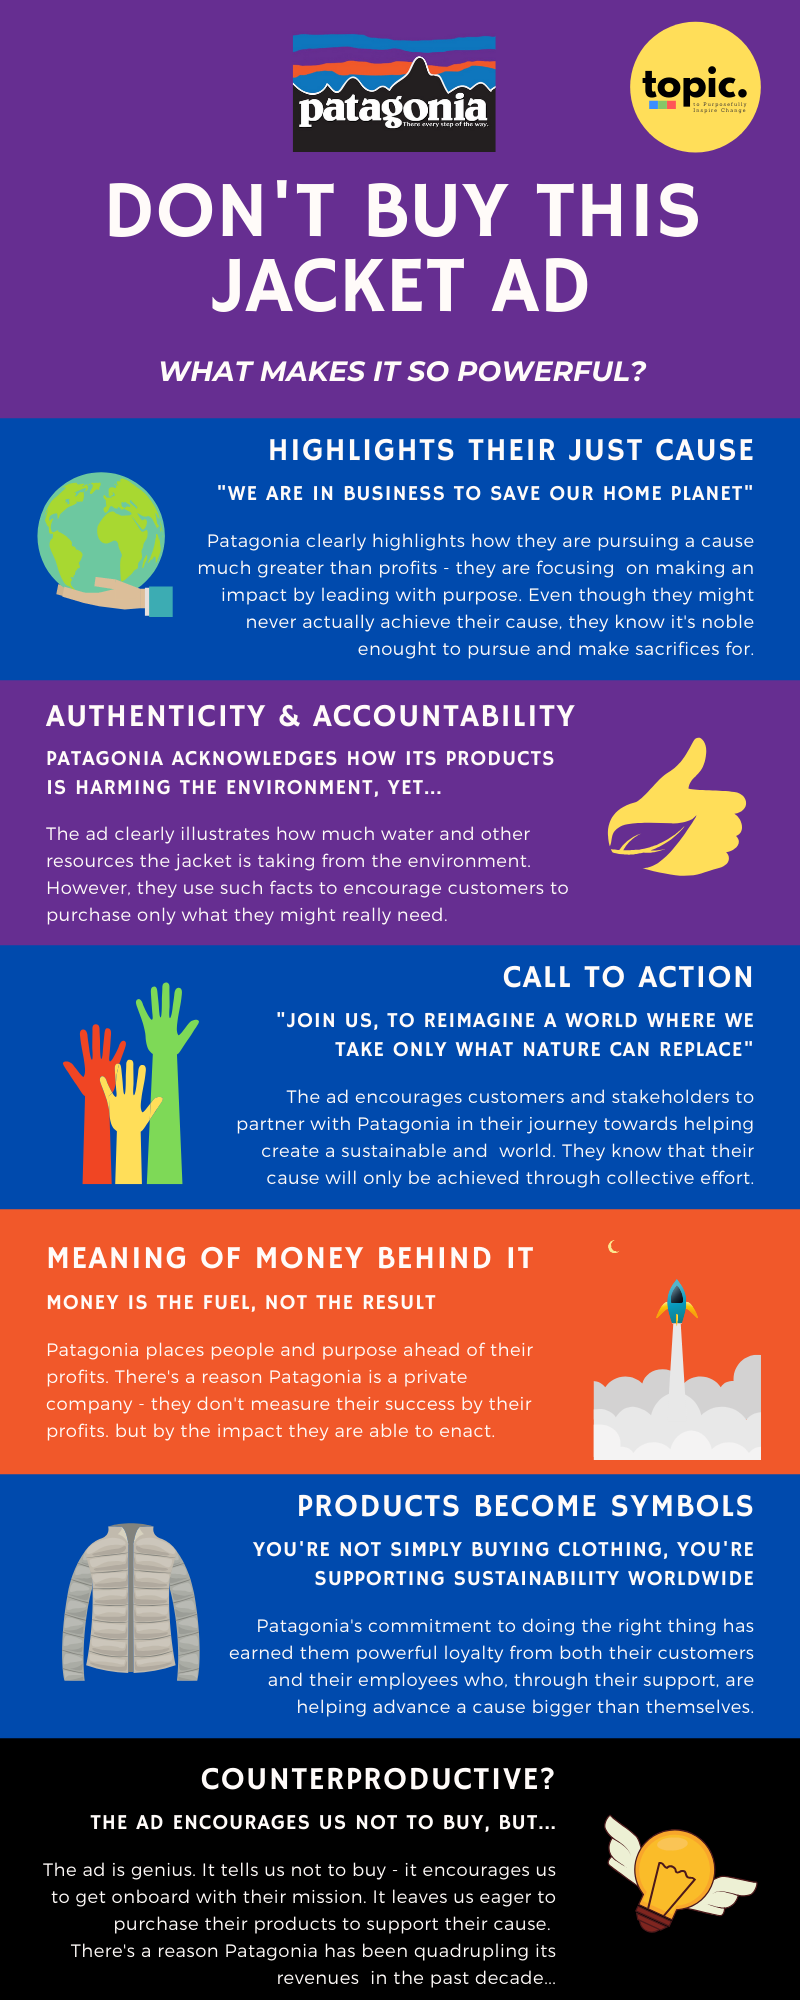 An infographic describing why Patagonia's Don't Buy This Jacket Ad is perhaps the most impactful and powerful marketing ad of all time